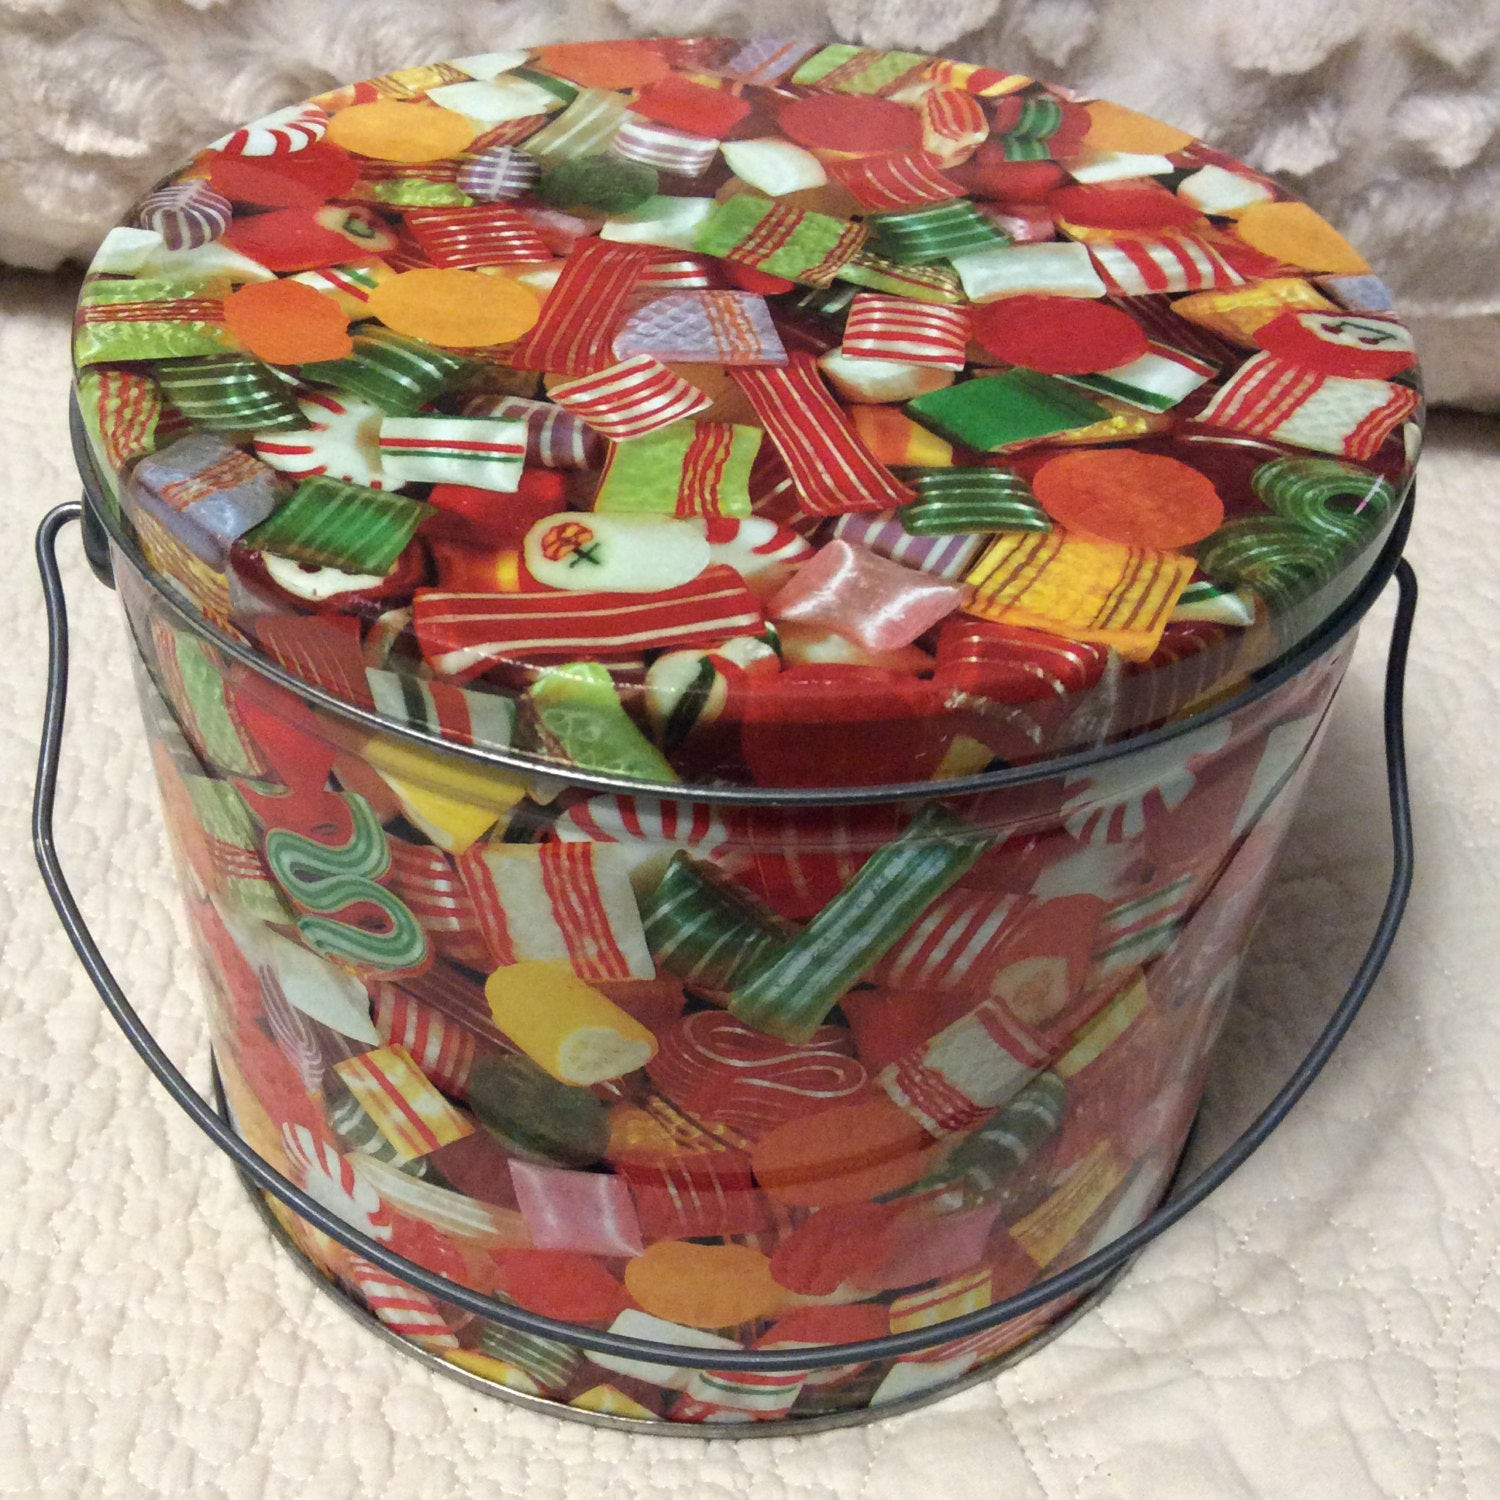 Christmas Candy Tins  Vintage Hard Candy Christmas Tin Container Pail Handle Bucket